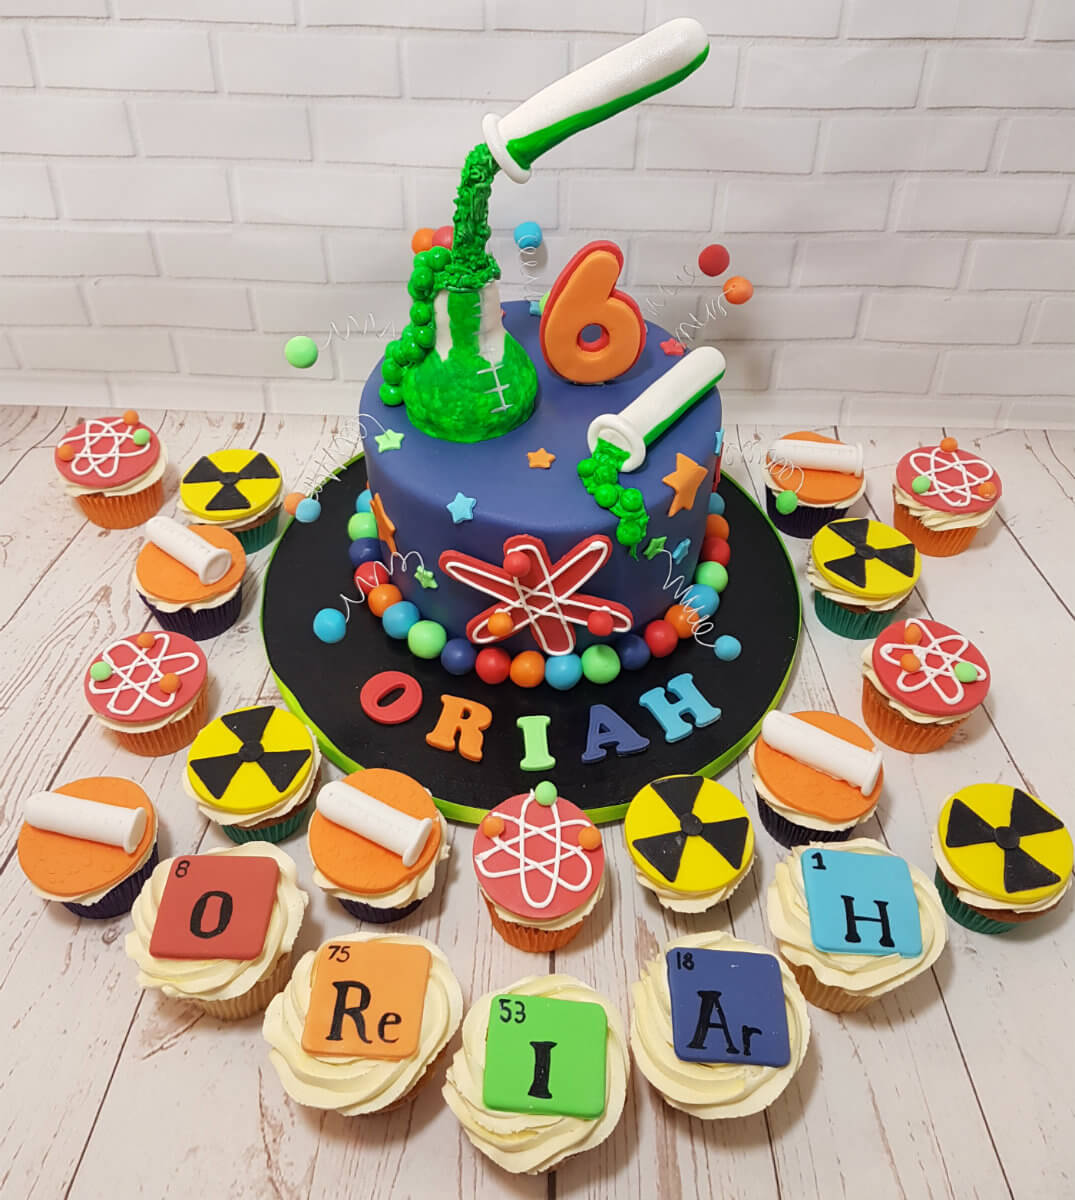 Science theme test tubes elements cake and cupcakes - tamworth